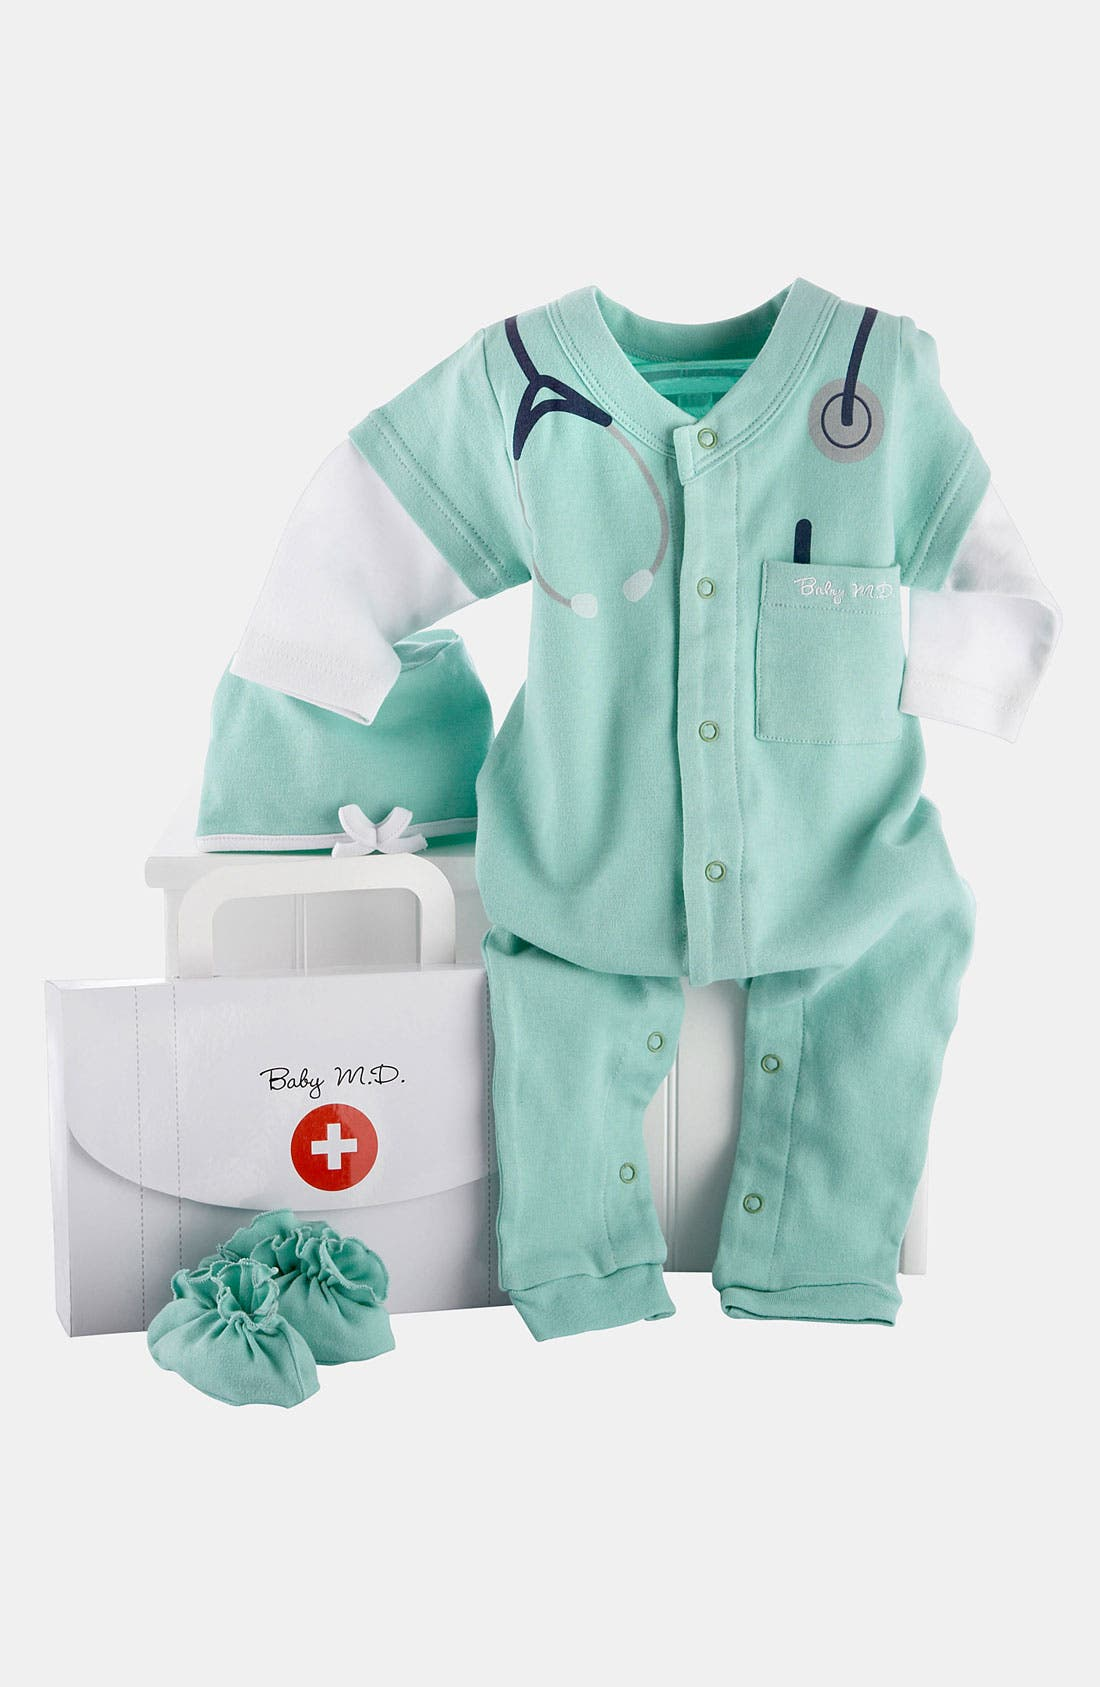 Alternate Image 2  - Baby Aspen 'Baby MD' Romper Set (Baby)